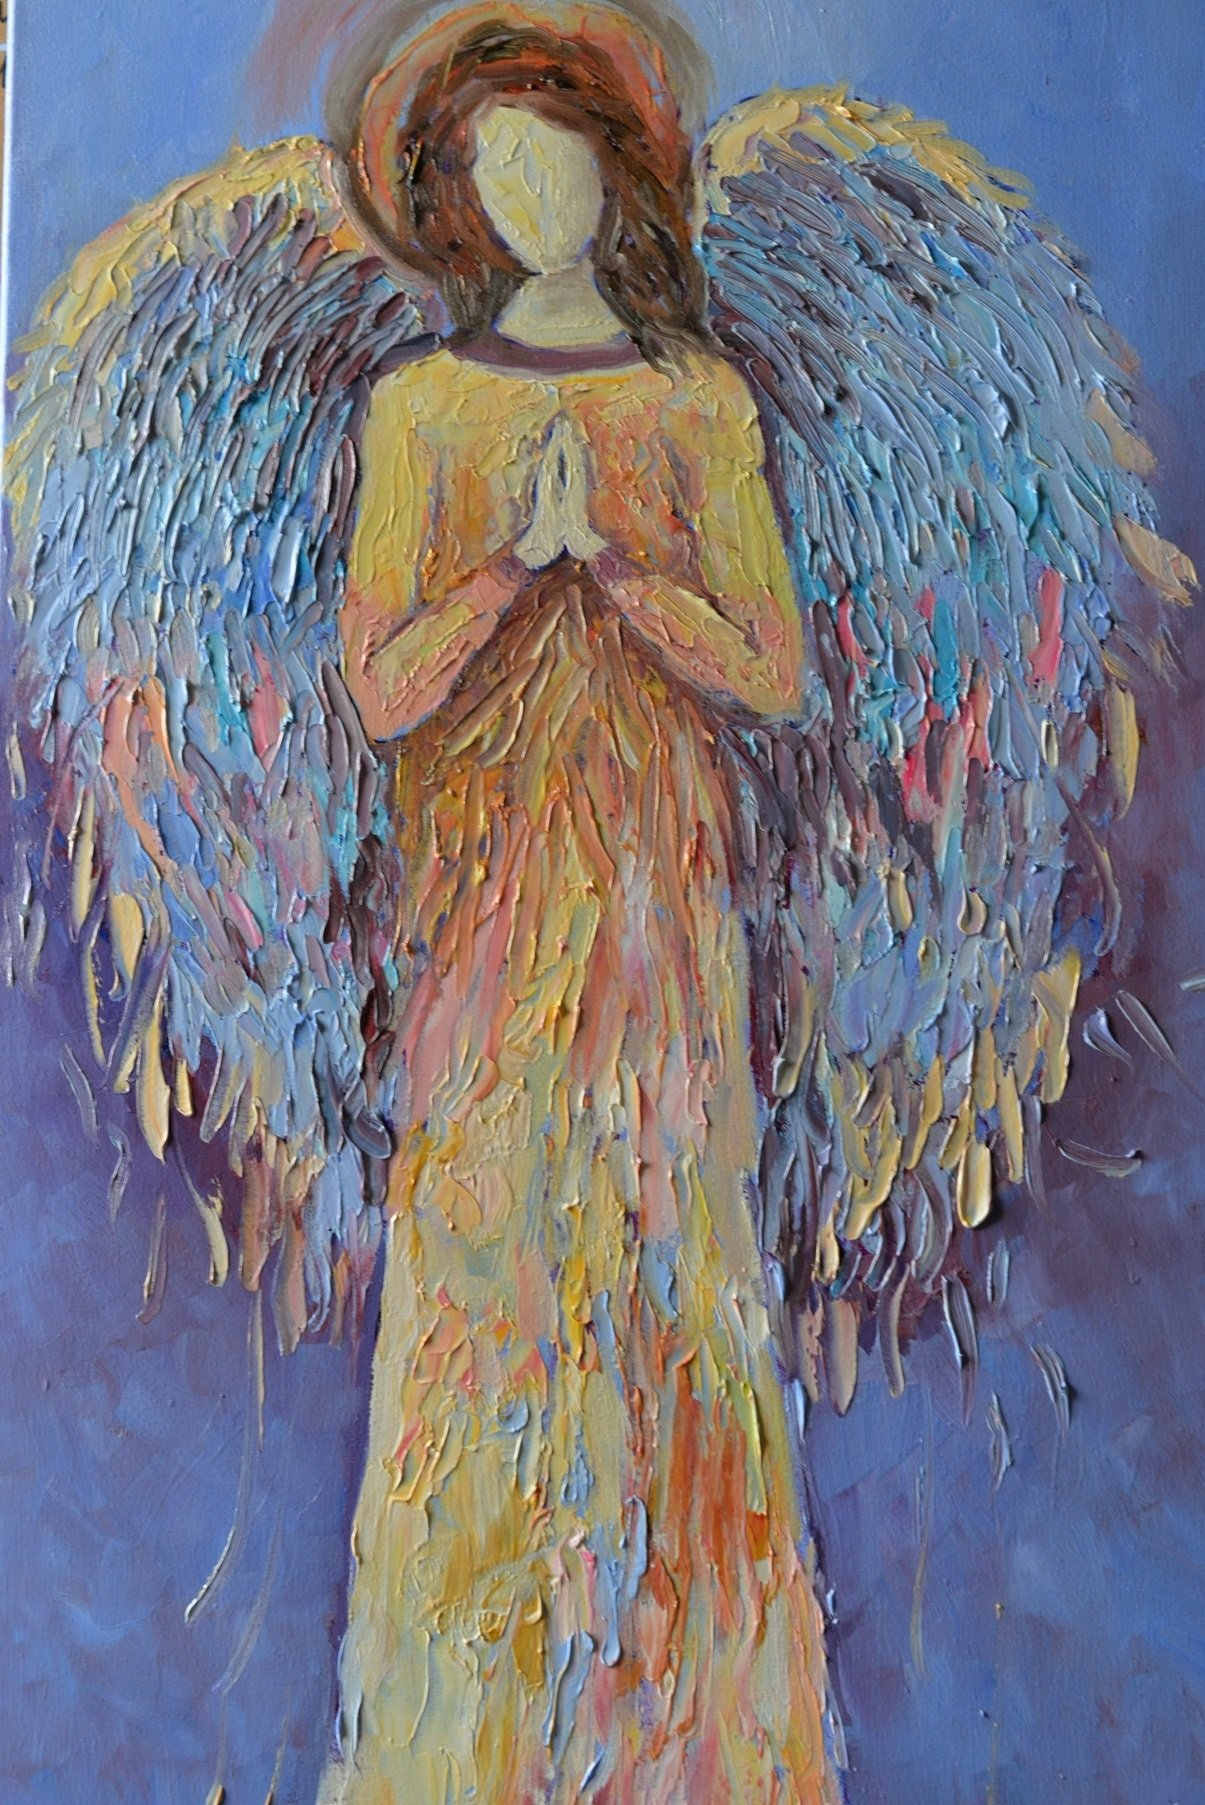 Angel Praying Painting Guardian Angel Wings Artwork on CANVAS Gold Blue Wall Art for Living Room Bedroom Christmas Original Oil Texture 16x32